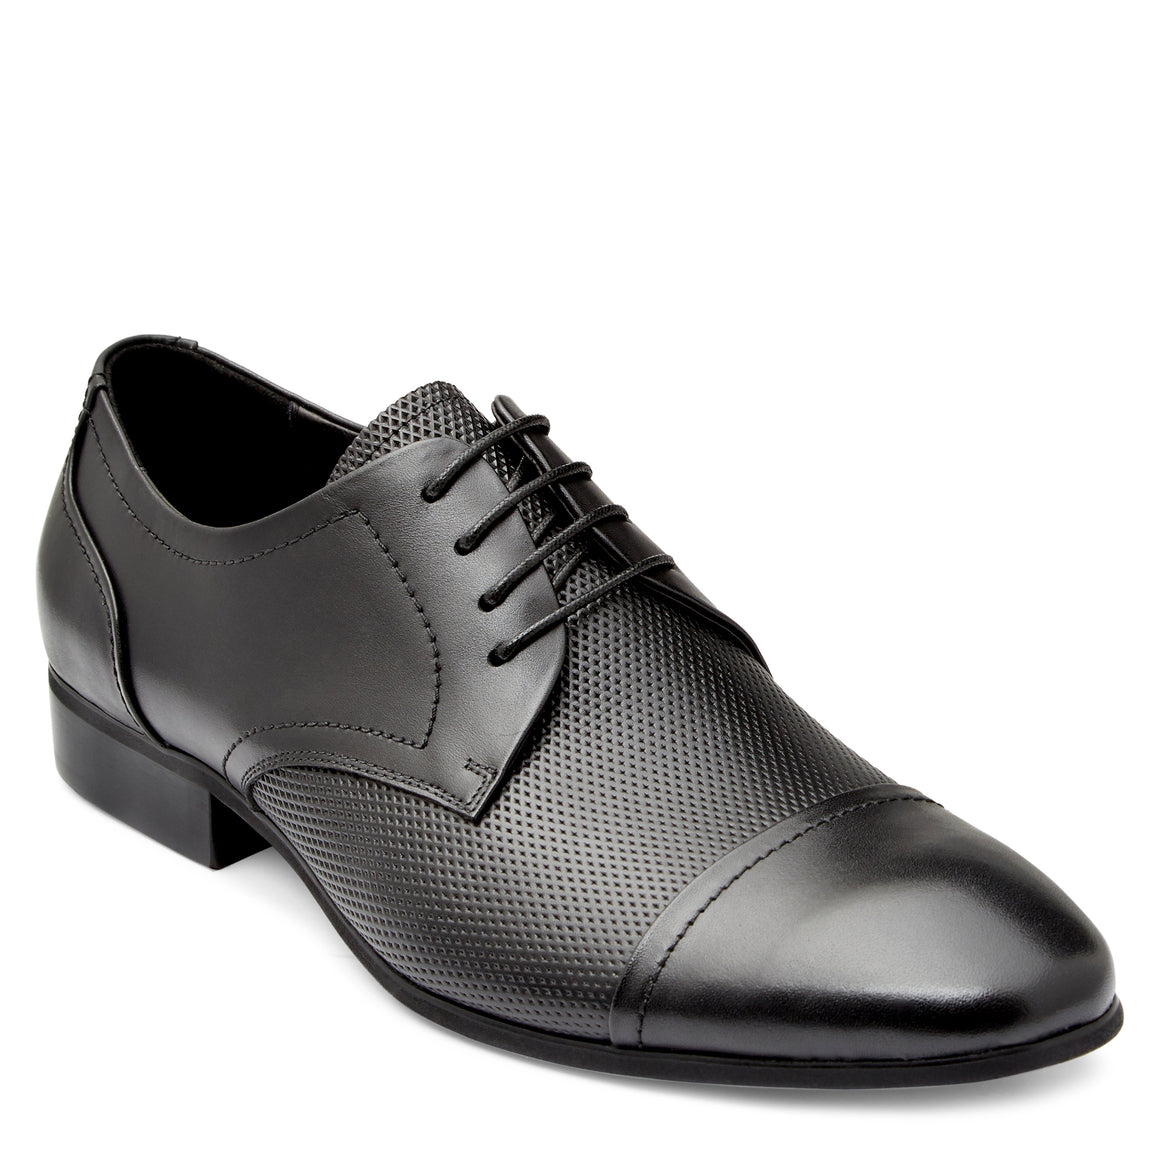 Olsen Black Derby Shoes